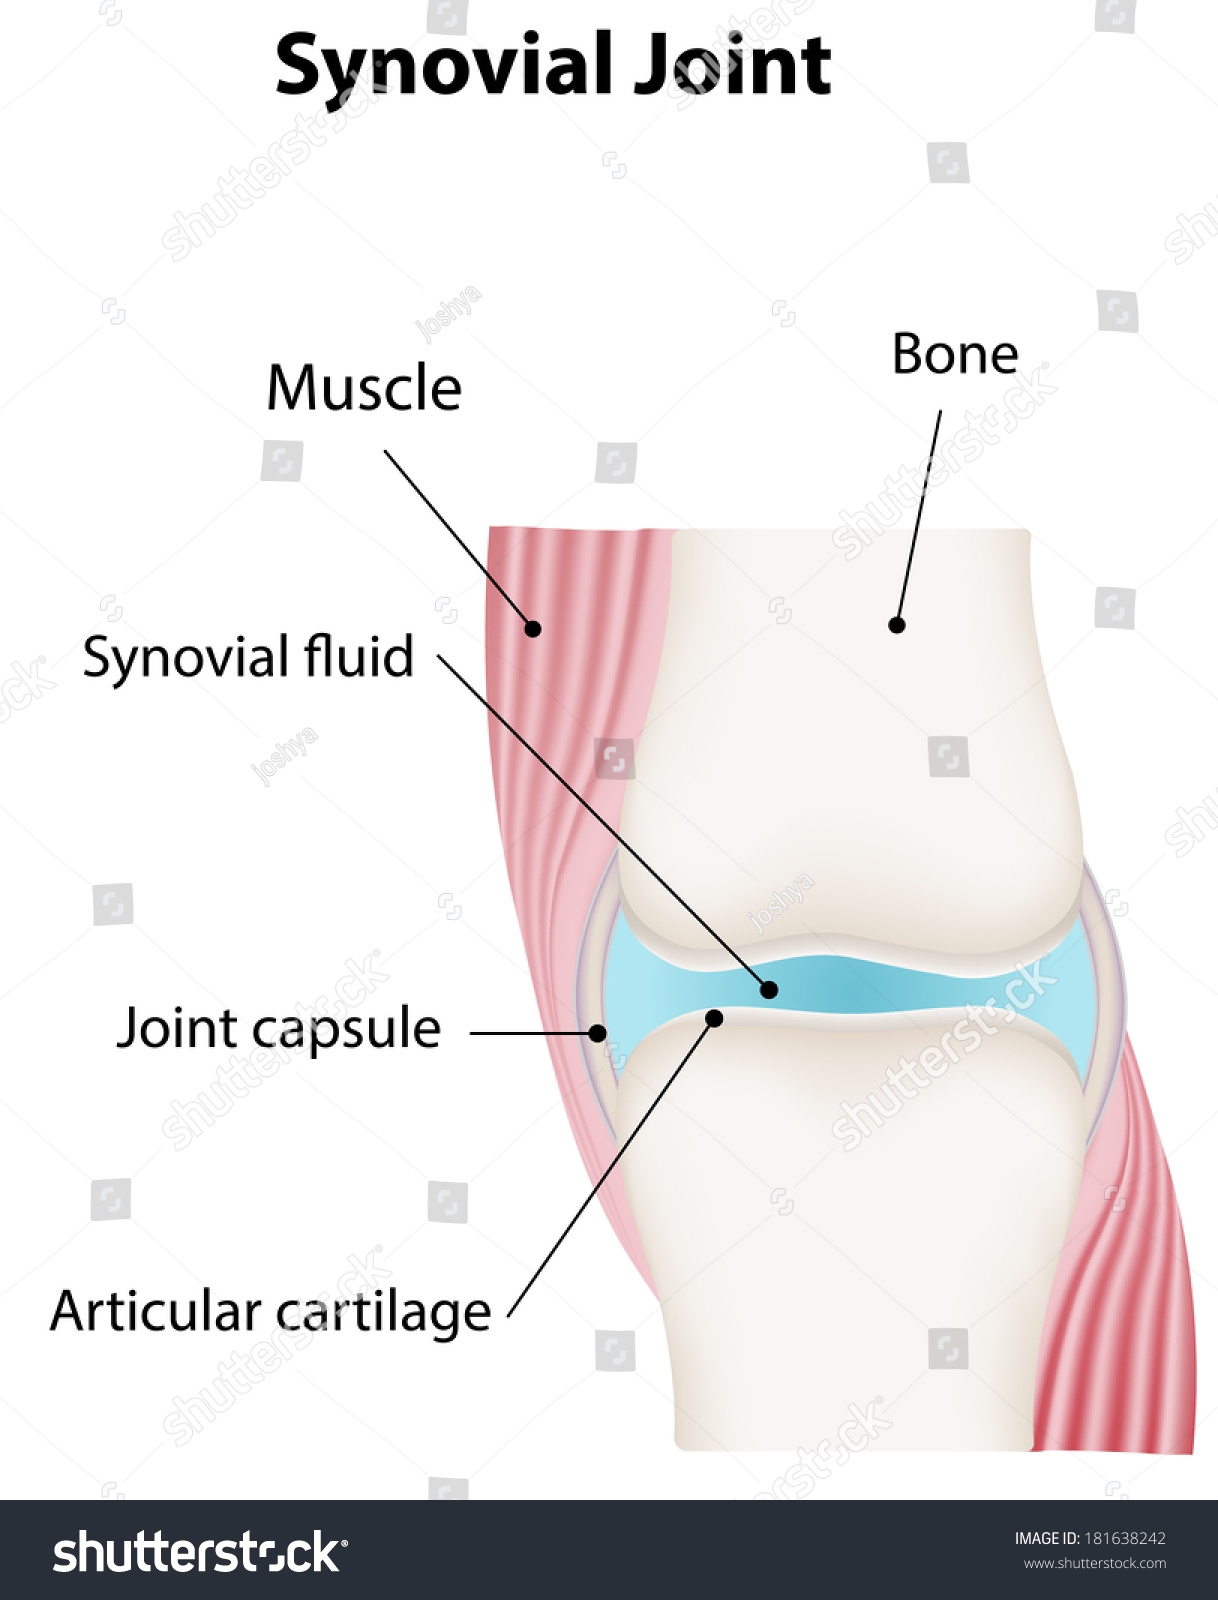 diagram of synovial joints diagram database wiring diagram synovial joint diagram stock illustration 181638242 shutterstock